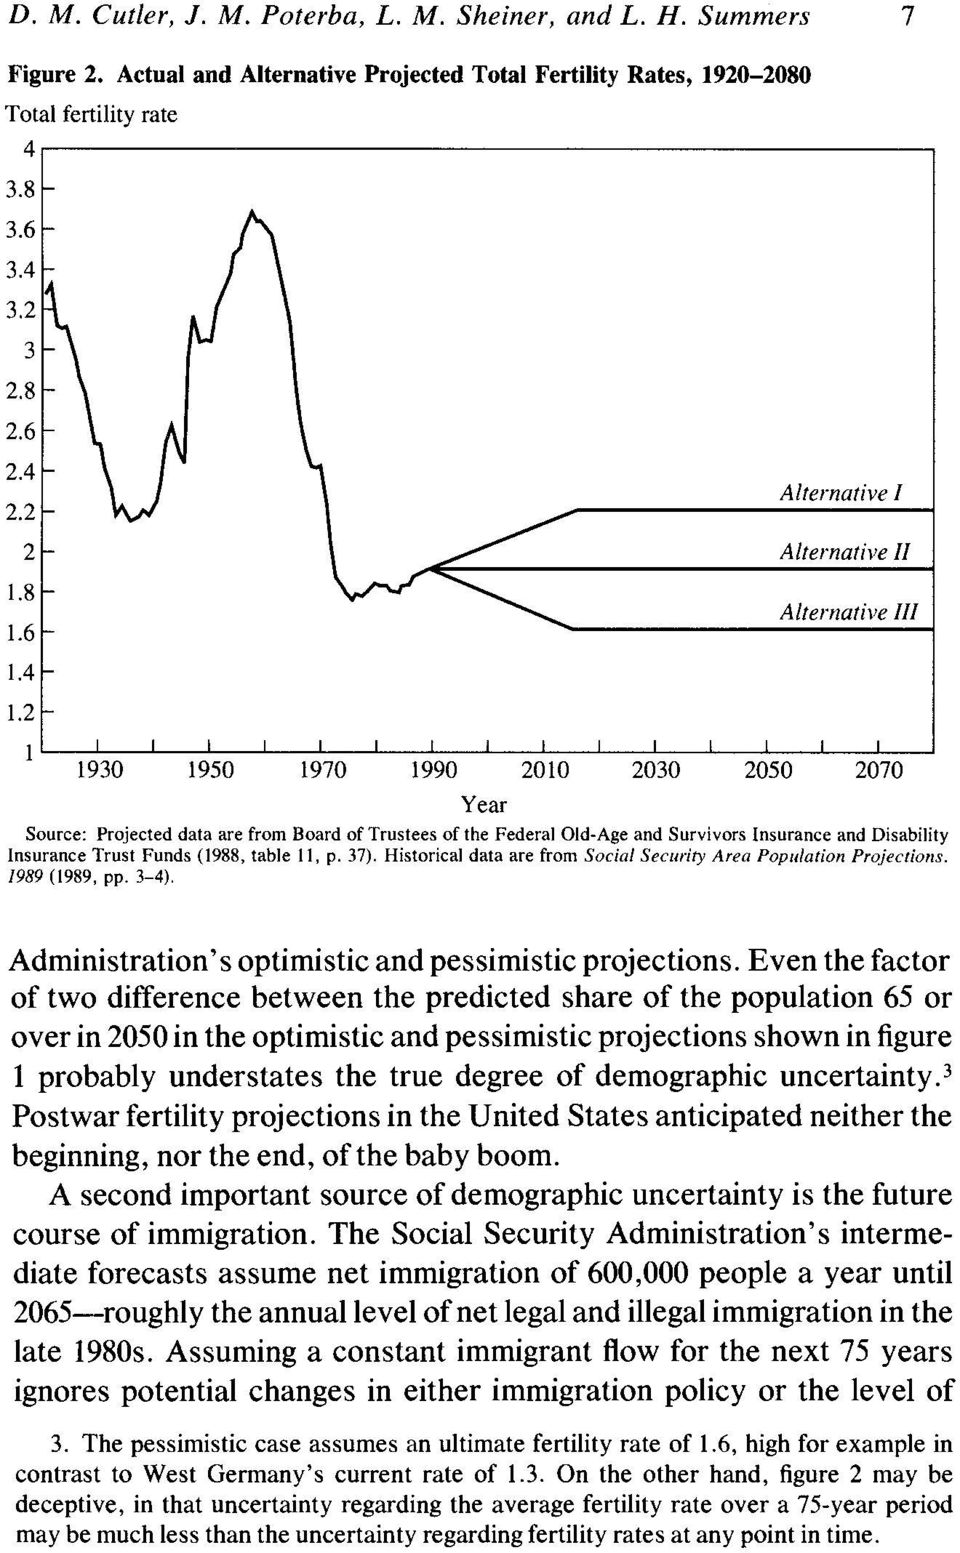 Insurance Trust Funds (1988, table 11, p. 37). Historical data are from Social Security Area Popuilation Projectionls. 1989 (1989, pp. 3-4). Administration's optimistic and pessimistic projections.